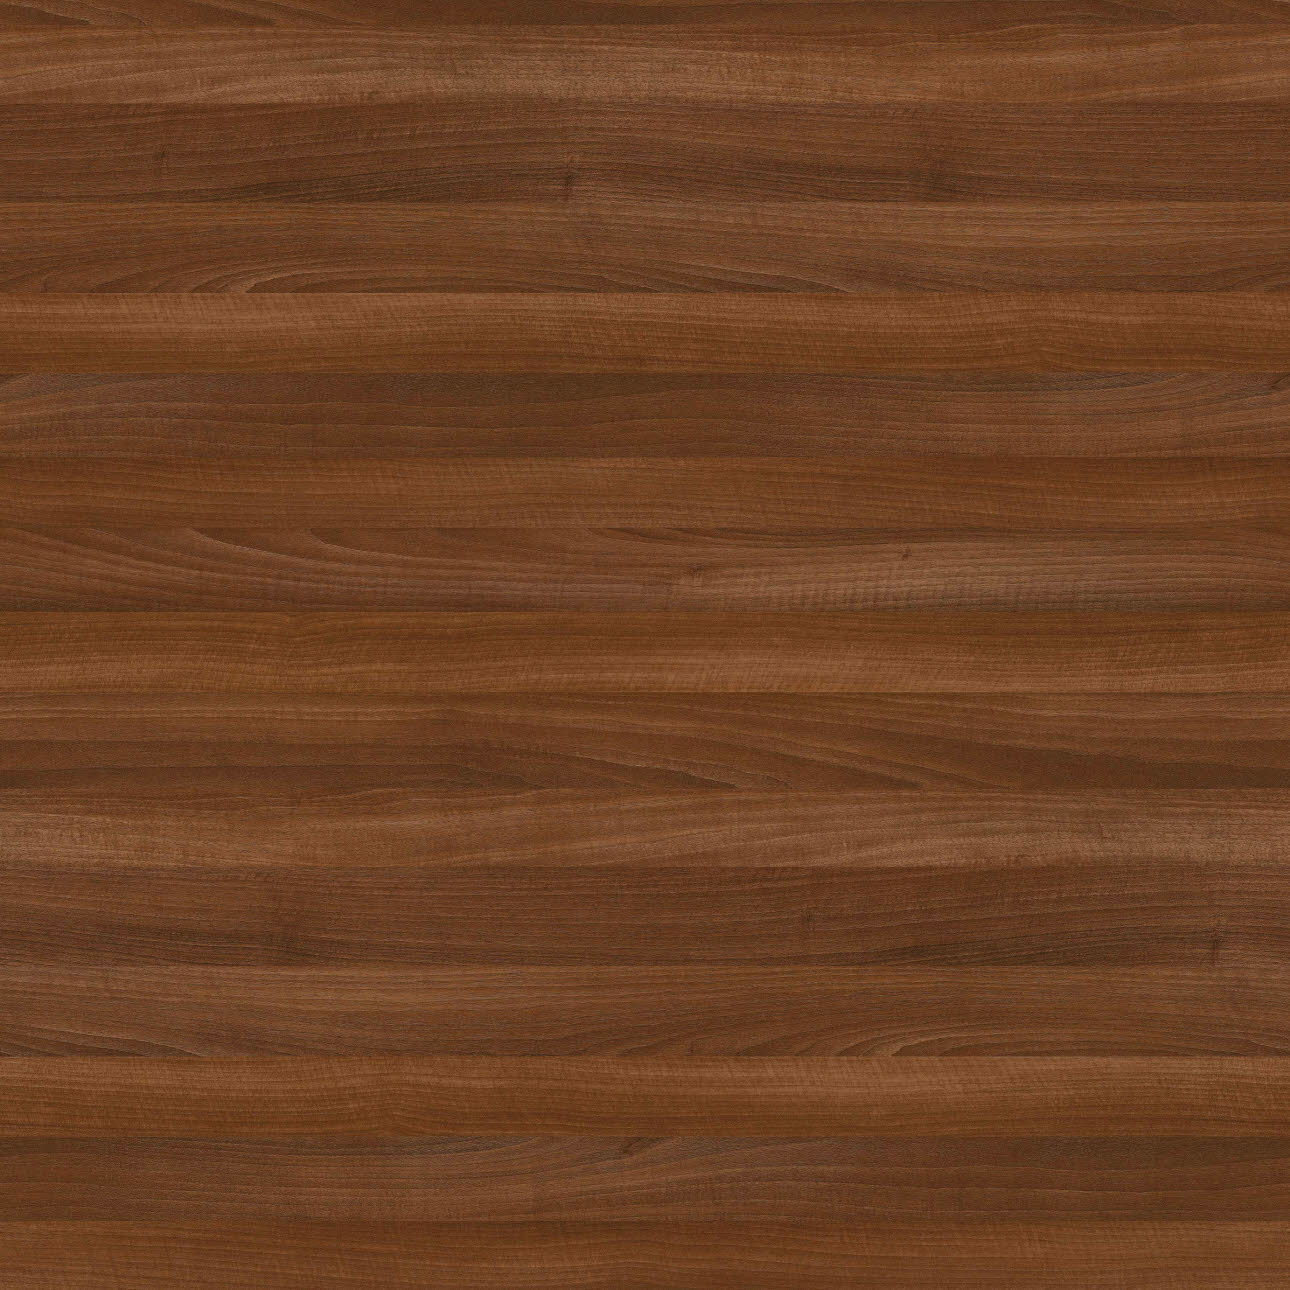 Walnut kitchen worktop, close up